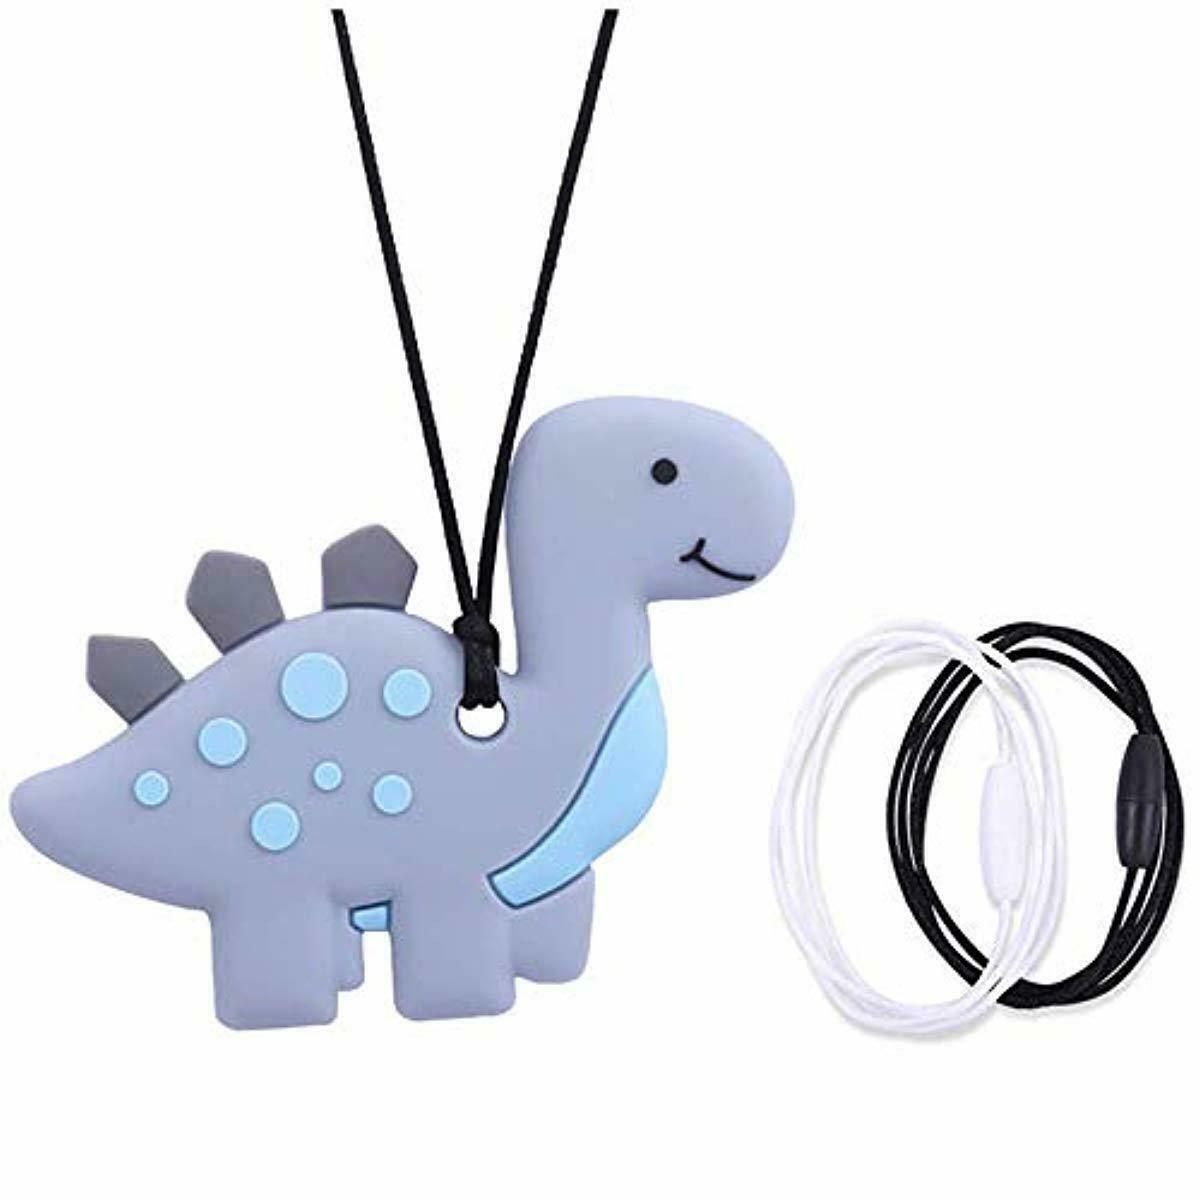 Sensory Chew Necklace for Boys and Girls,Food Grade Silicone